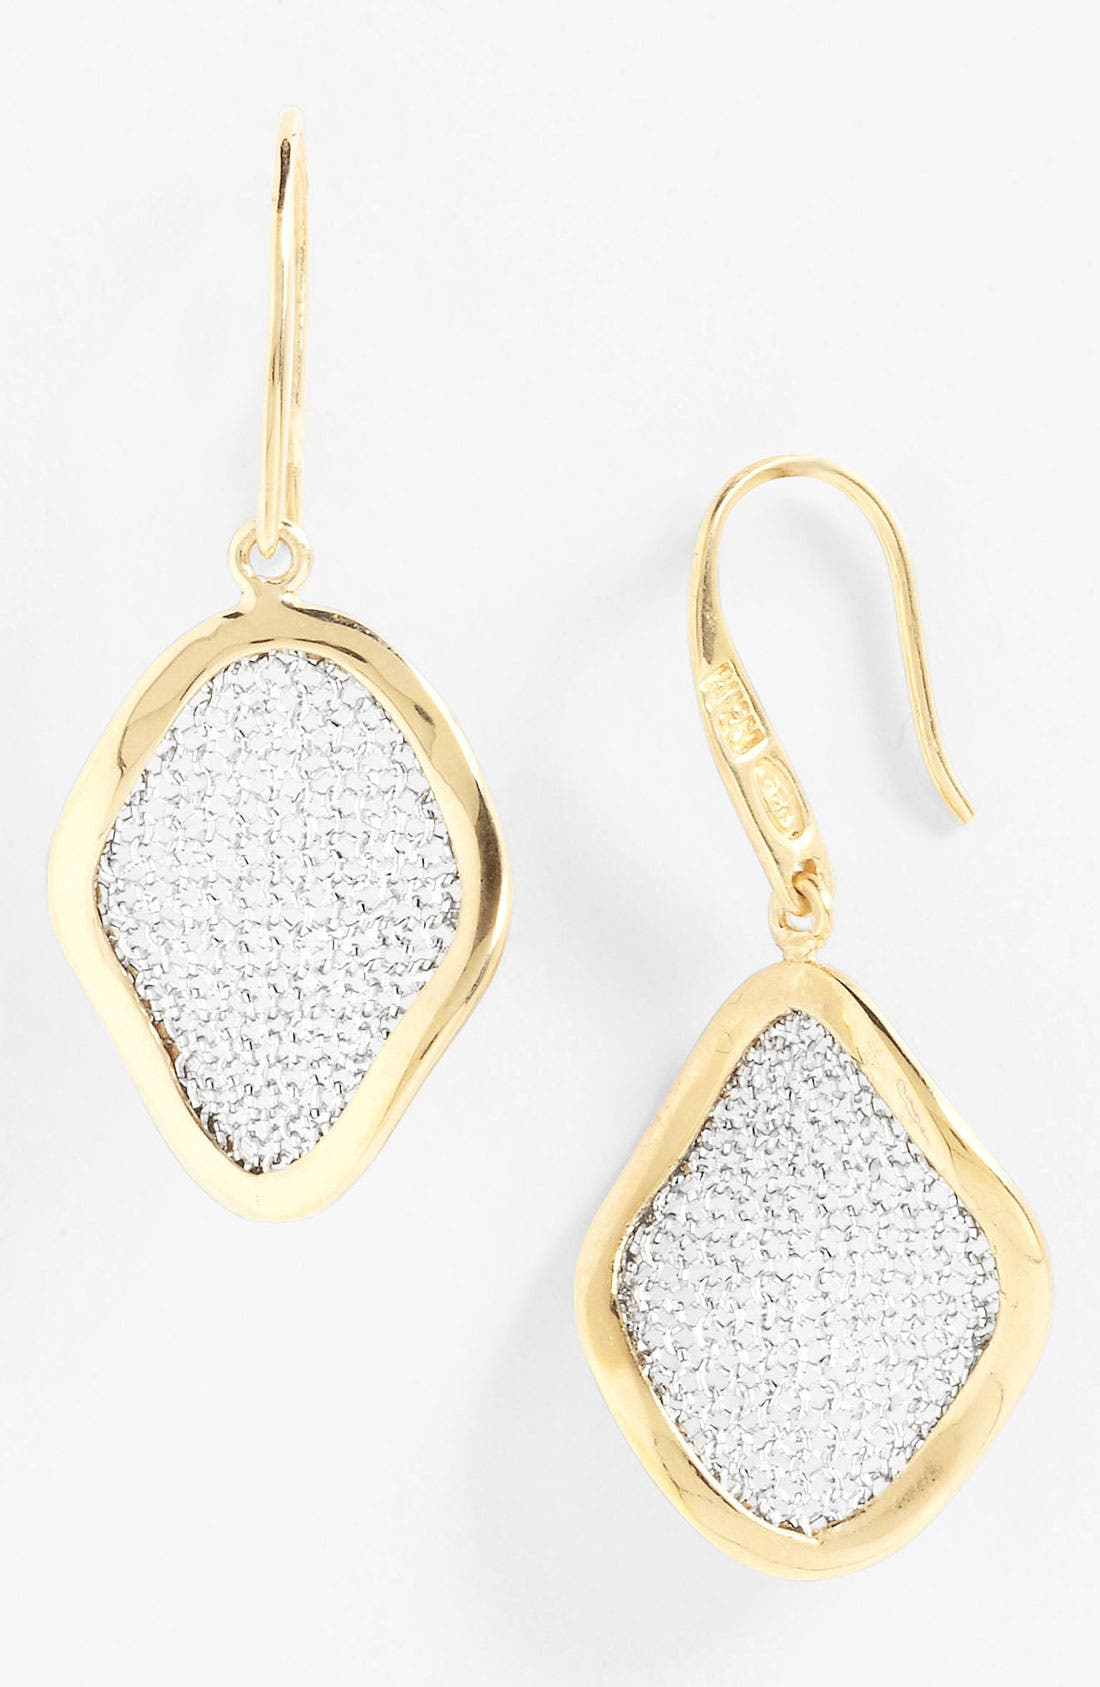 Alternate Image 1 Selected - Adami & Martucci 'Mesh' Small Drop Earrings